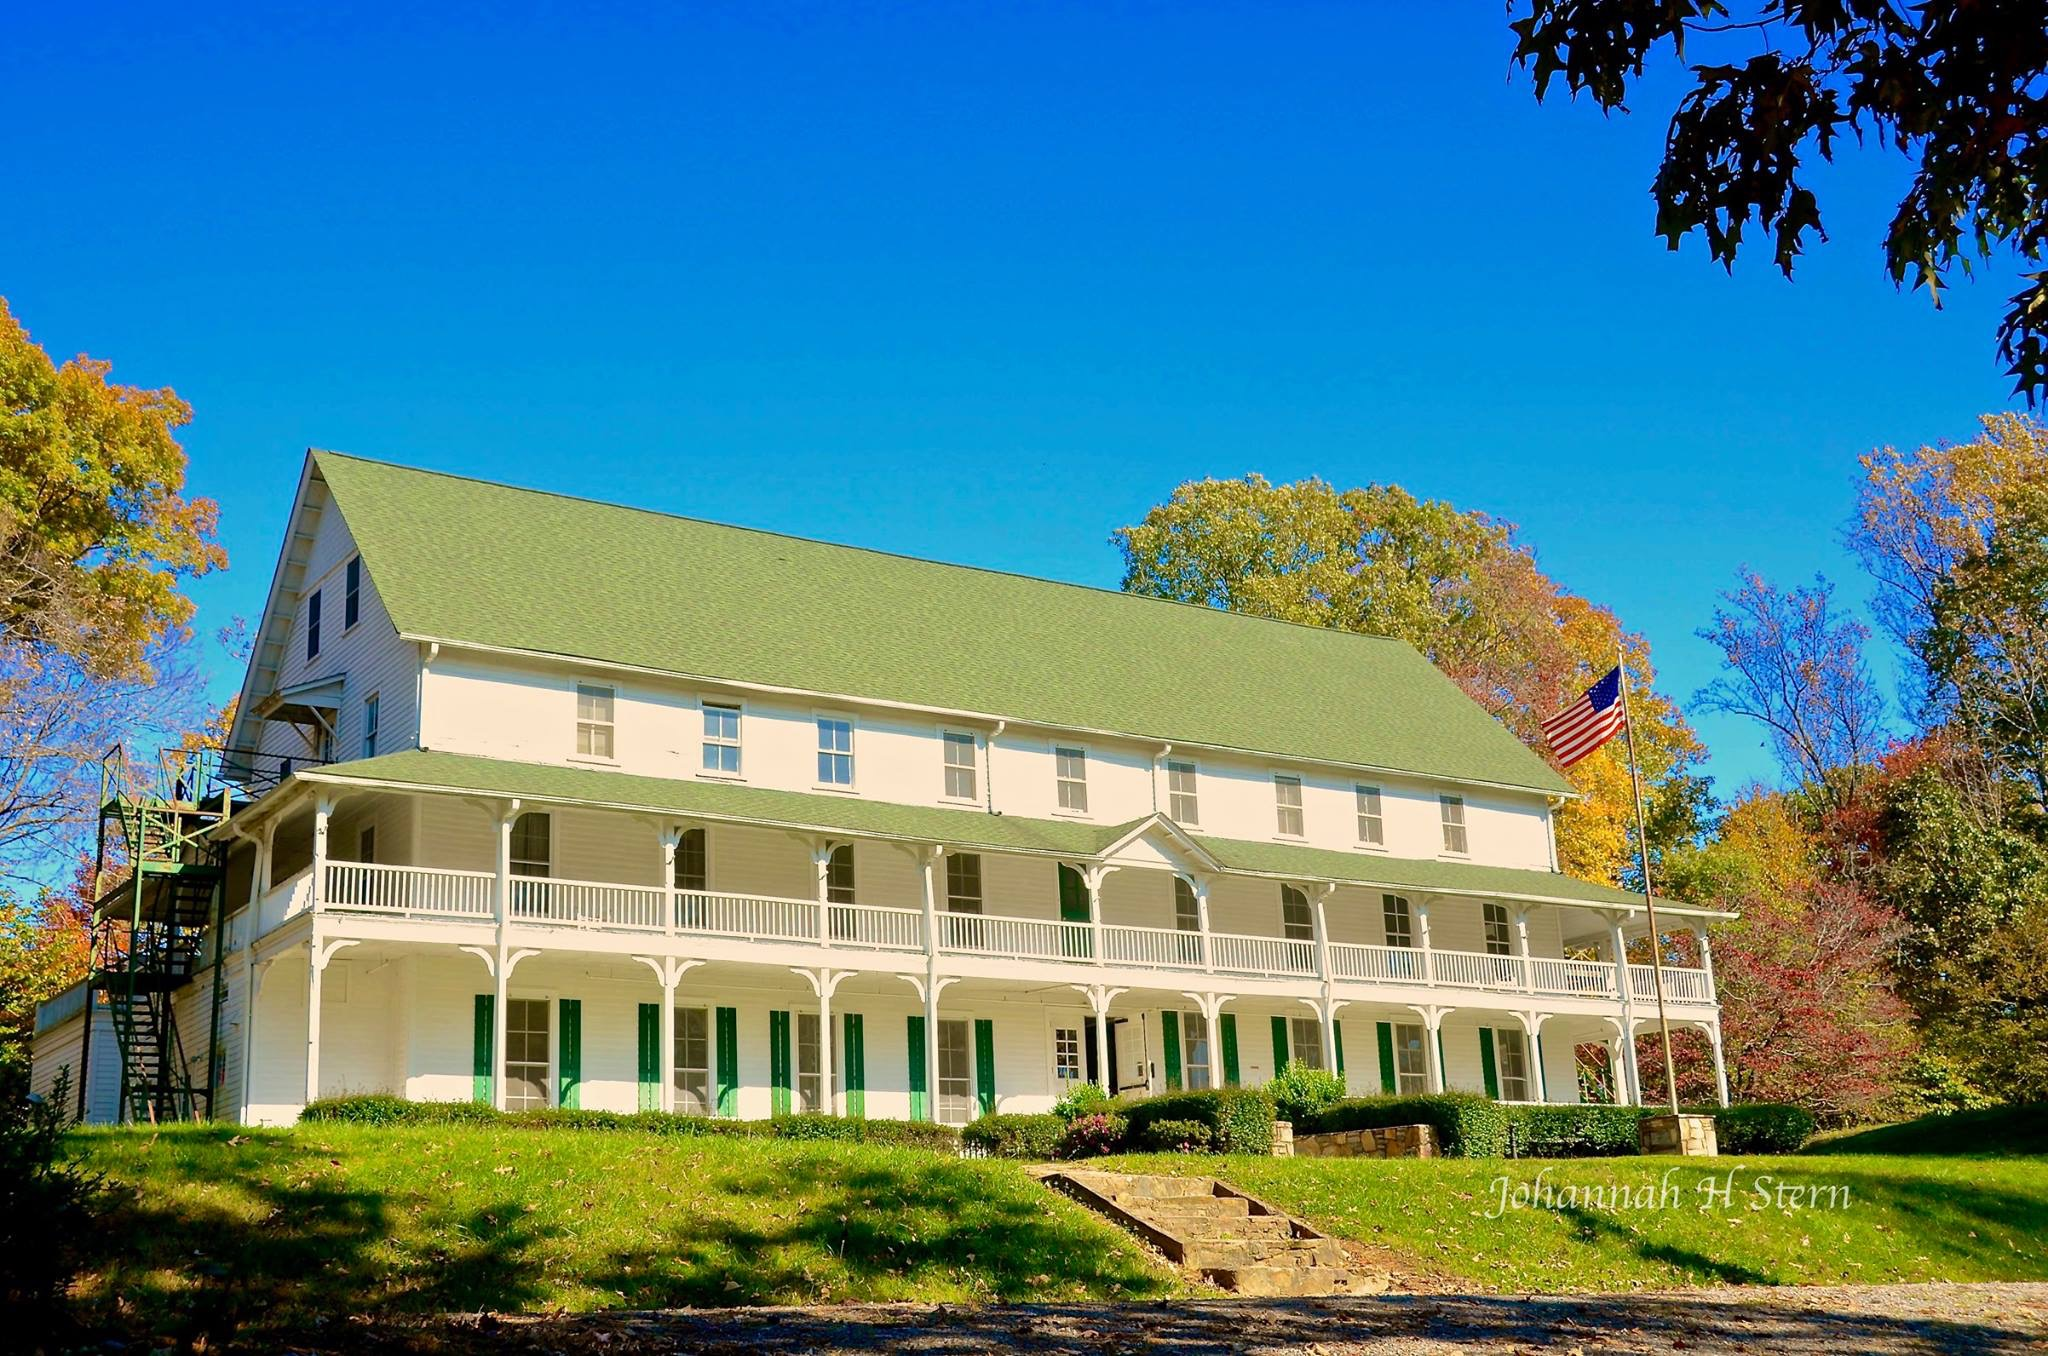 Vade Mecum Hotel circa 1902 at Hanging Rock State Park, photo by Johannah H. Stern